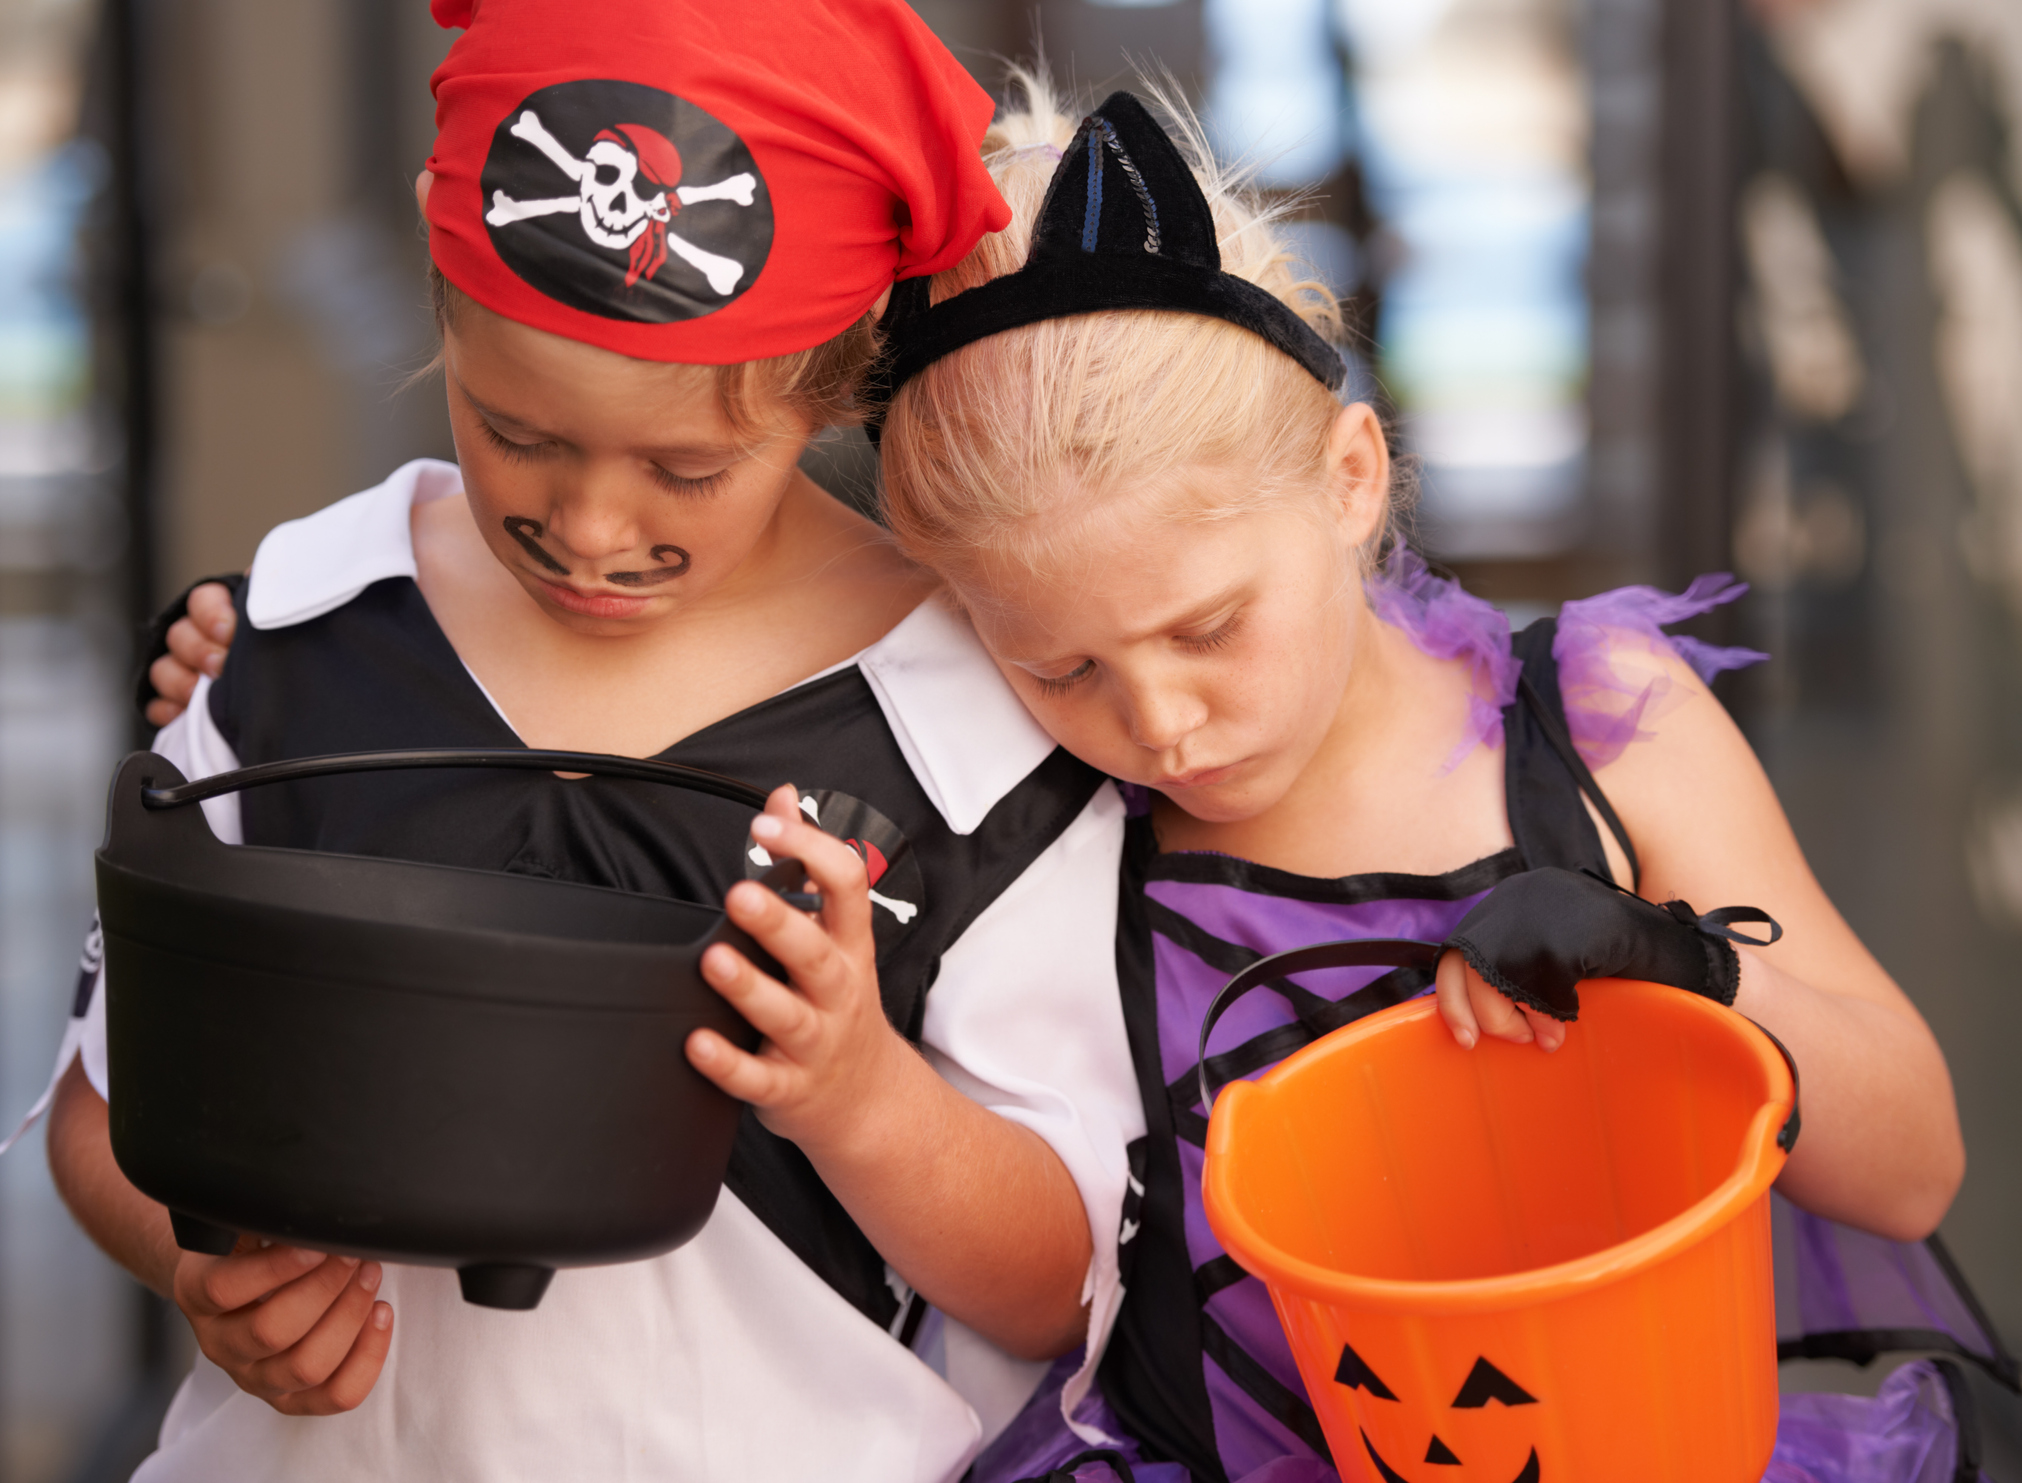 Trick-or-treating not recommended in LA County amid COVID-19 pandemic